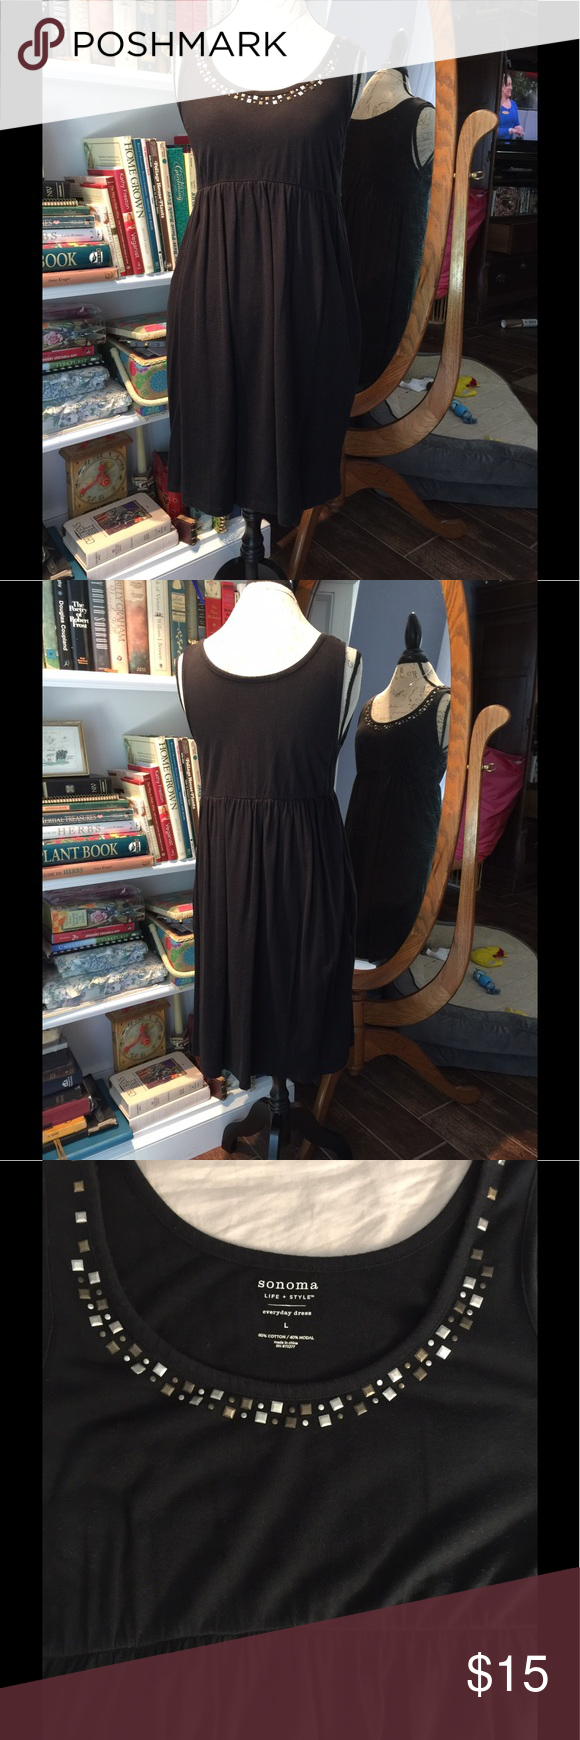 EUC Sonoma black knit sundress with metal accents Sonoma size large comfortable black knit sleeveless dress hidden side pockets elastic waist with silver tone and gold tone accents around neck. Only worn a few times. Perfect for spring summer fall winter with cardigan or beach bathing suit cover up.   Please check out my other quality listings. All sales final.   Tags: tank top blouse mini midi maxi LuLaRoe Carly leggings pants jeans shorts shoes jewelry Sonoma Dresses Mini